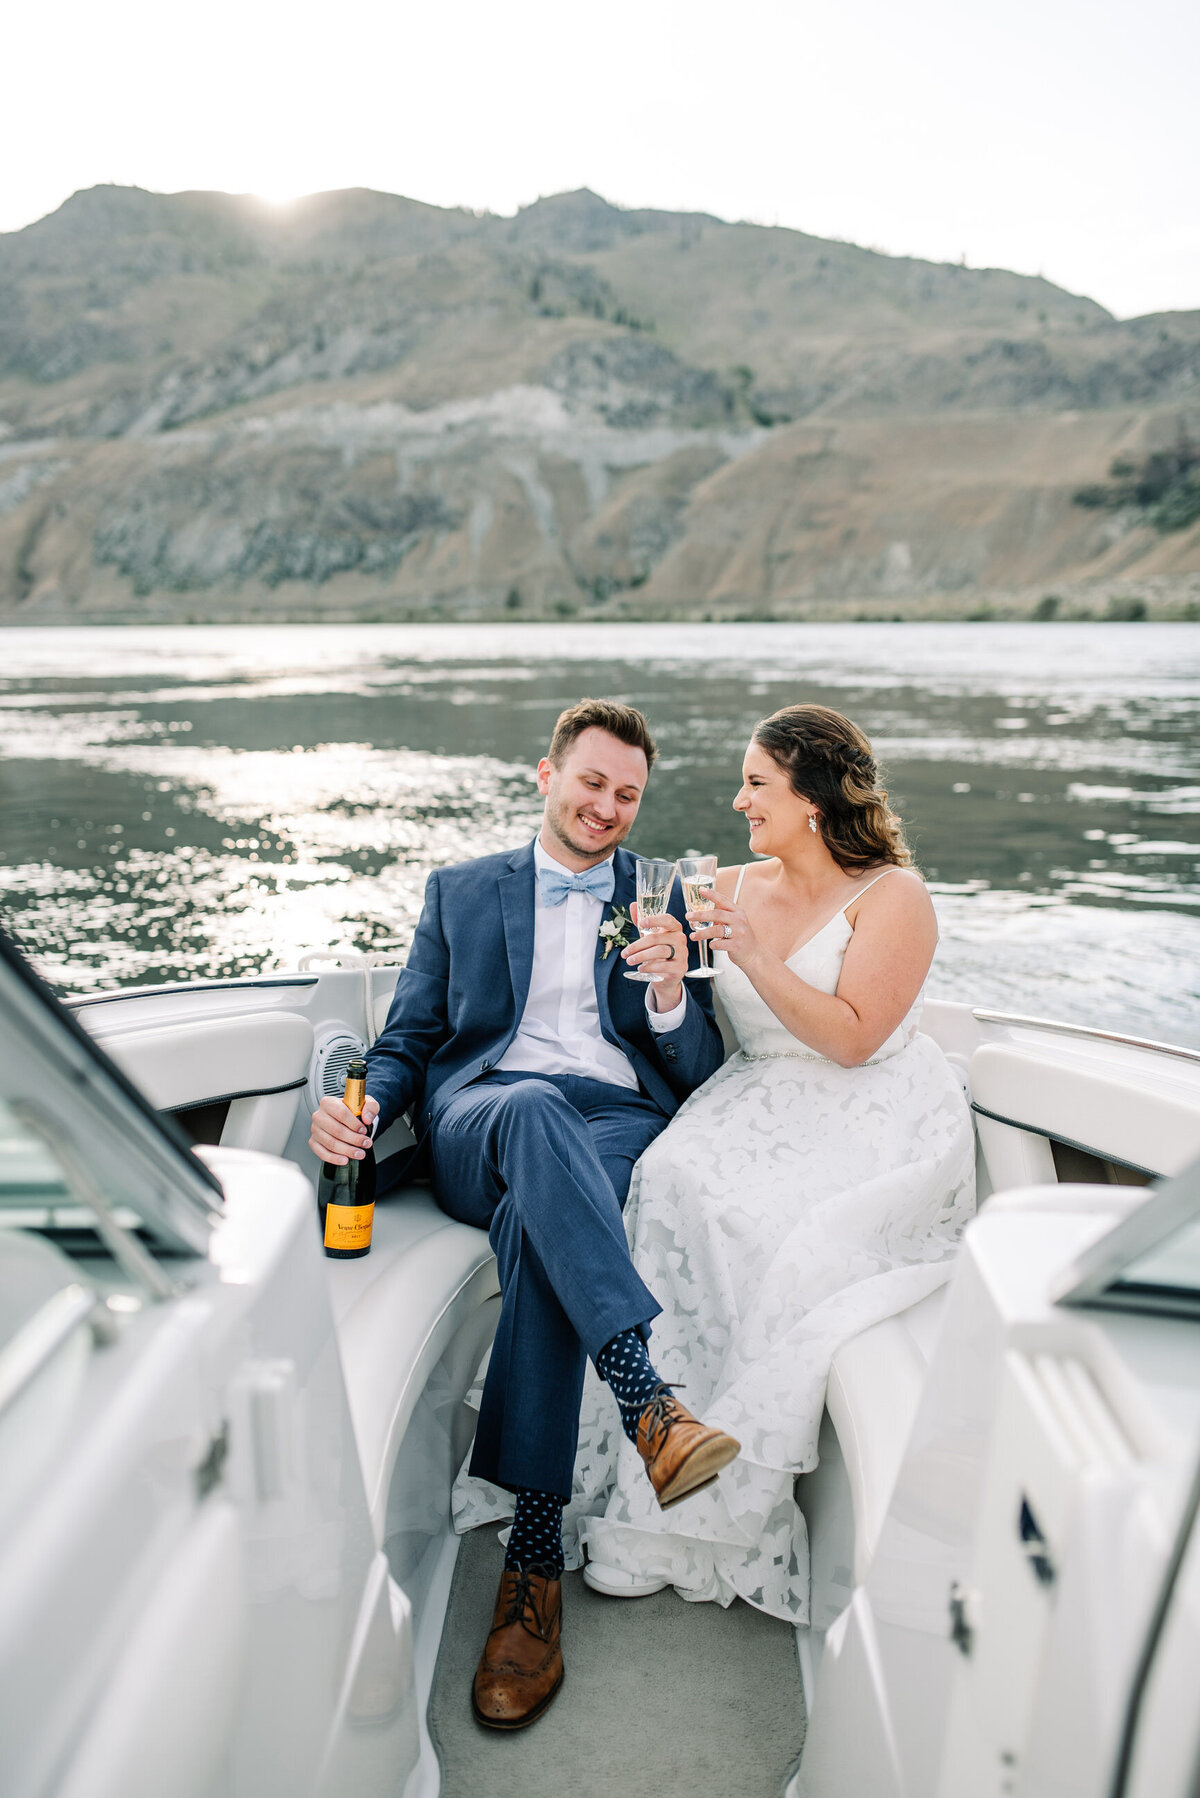 Bride and groom toast with champagne on a sunset boat ride on Lake Chelan